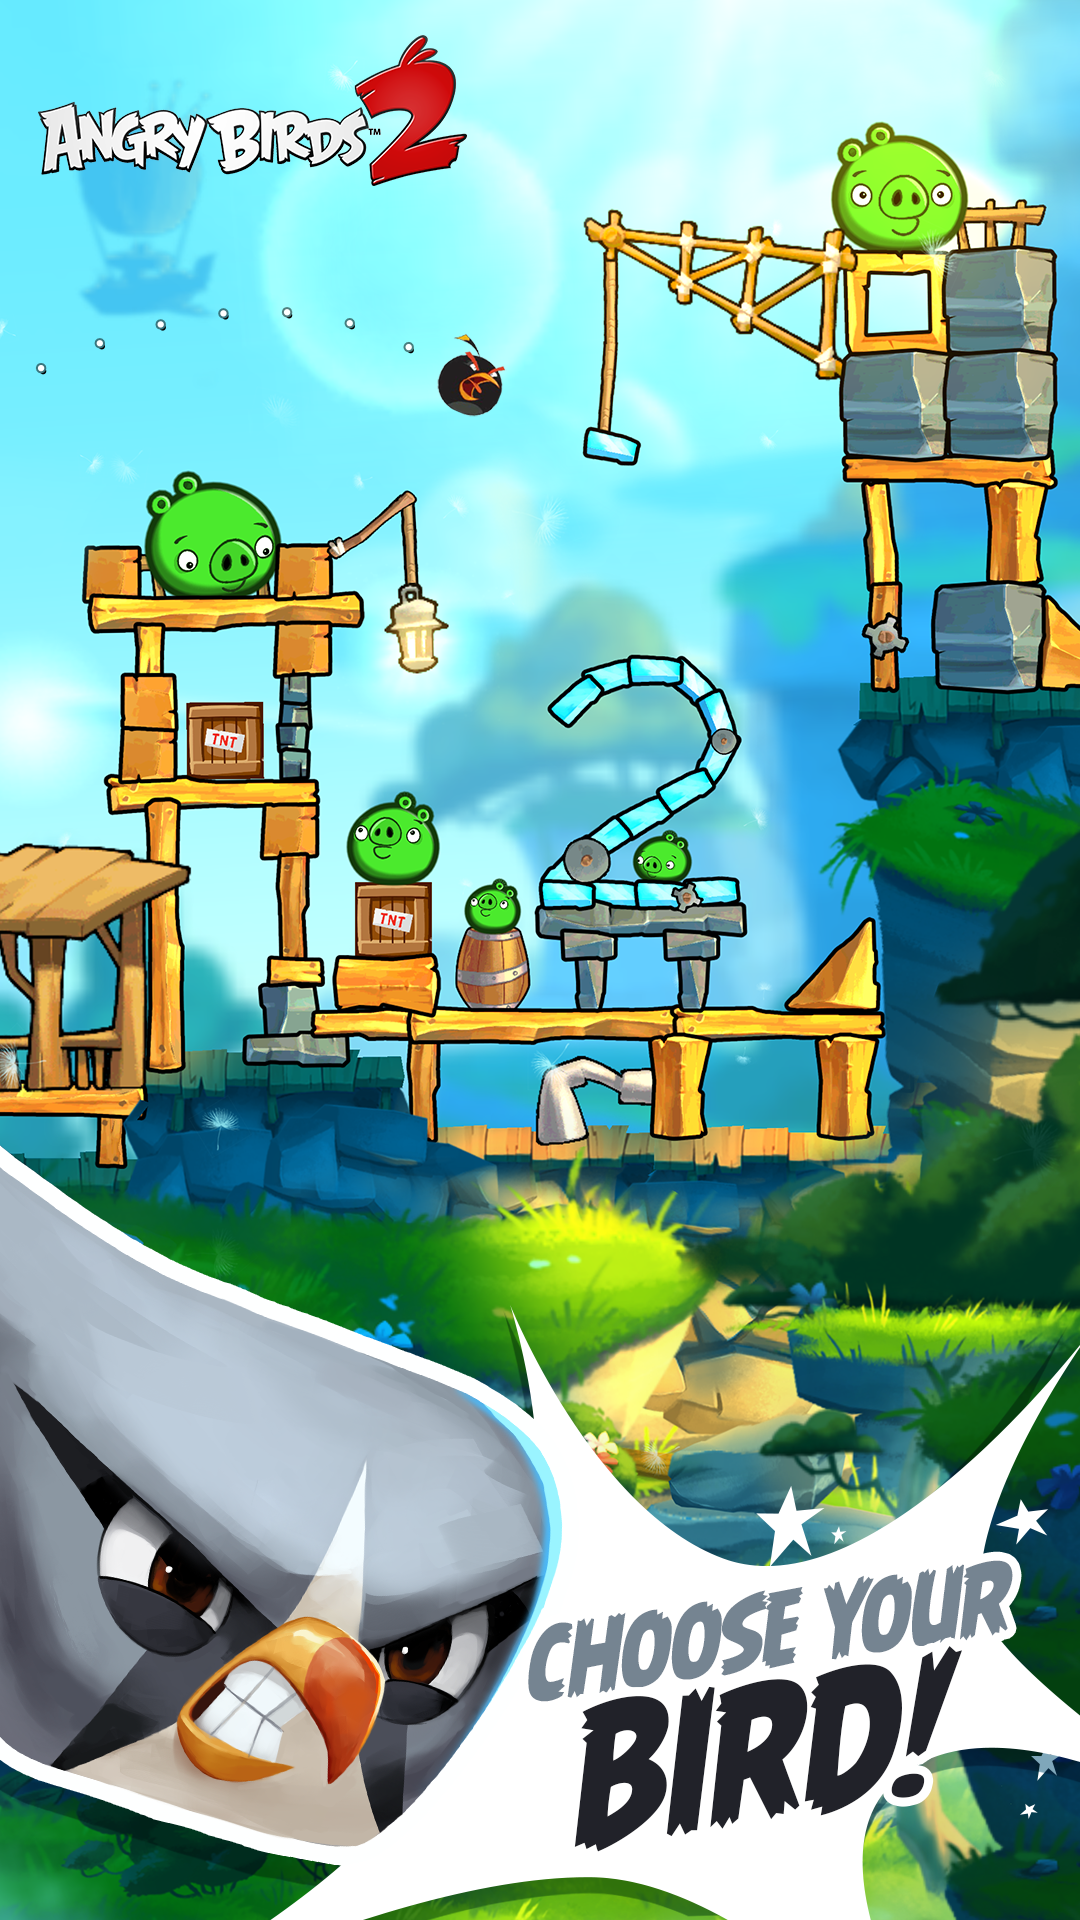 Angry Birds 2 screenshot #13